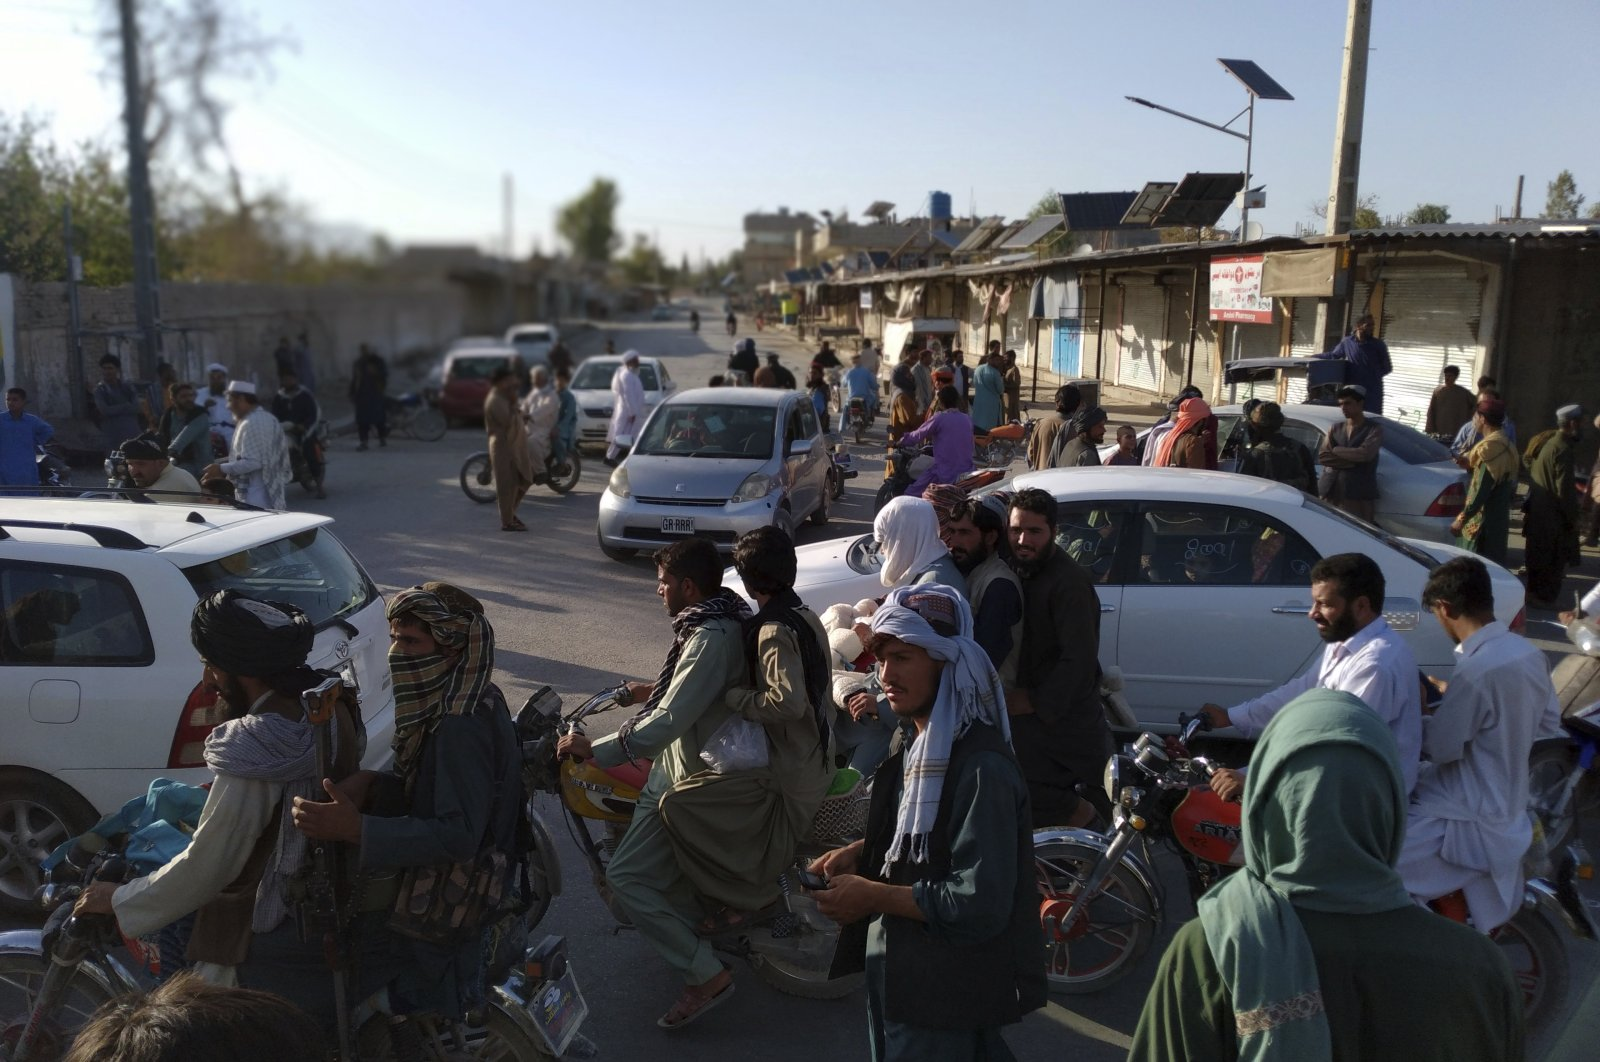 Taliban fighters are seen inside the city of Farah, capital of  Farah province southwest of Kabul, Afghanistan, Aug. 10, 2021. (AP Photo)